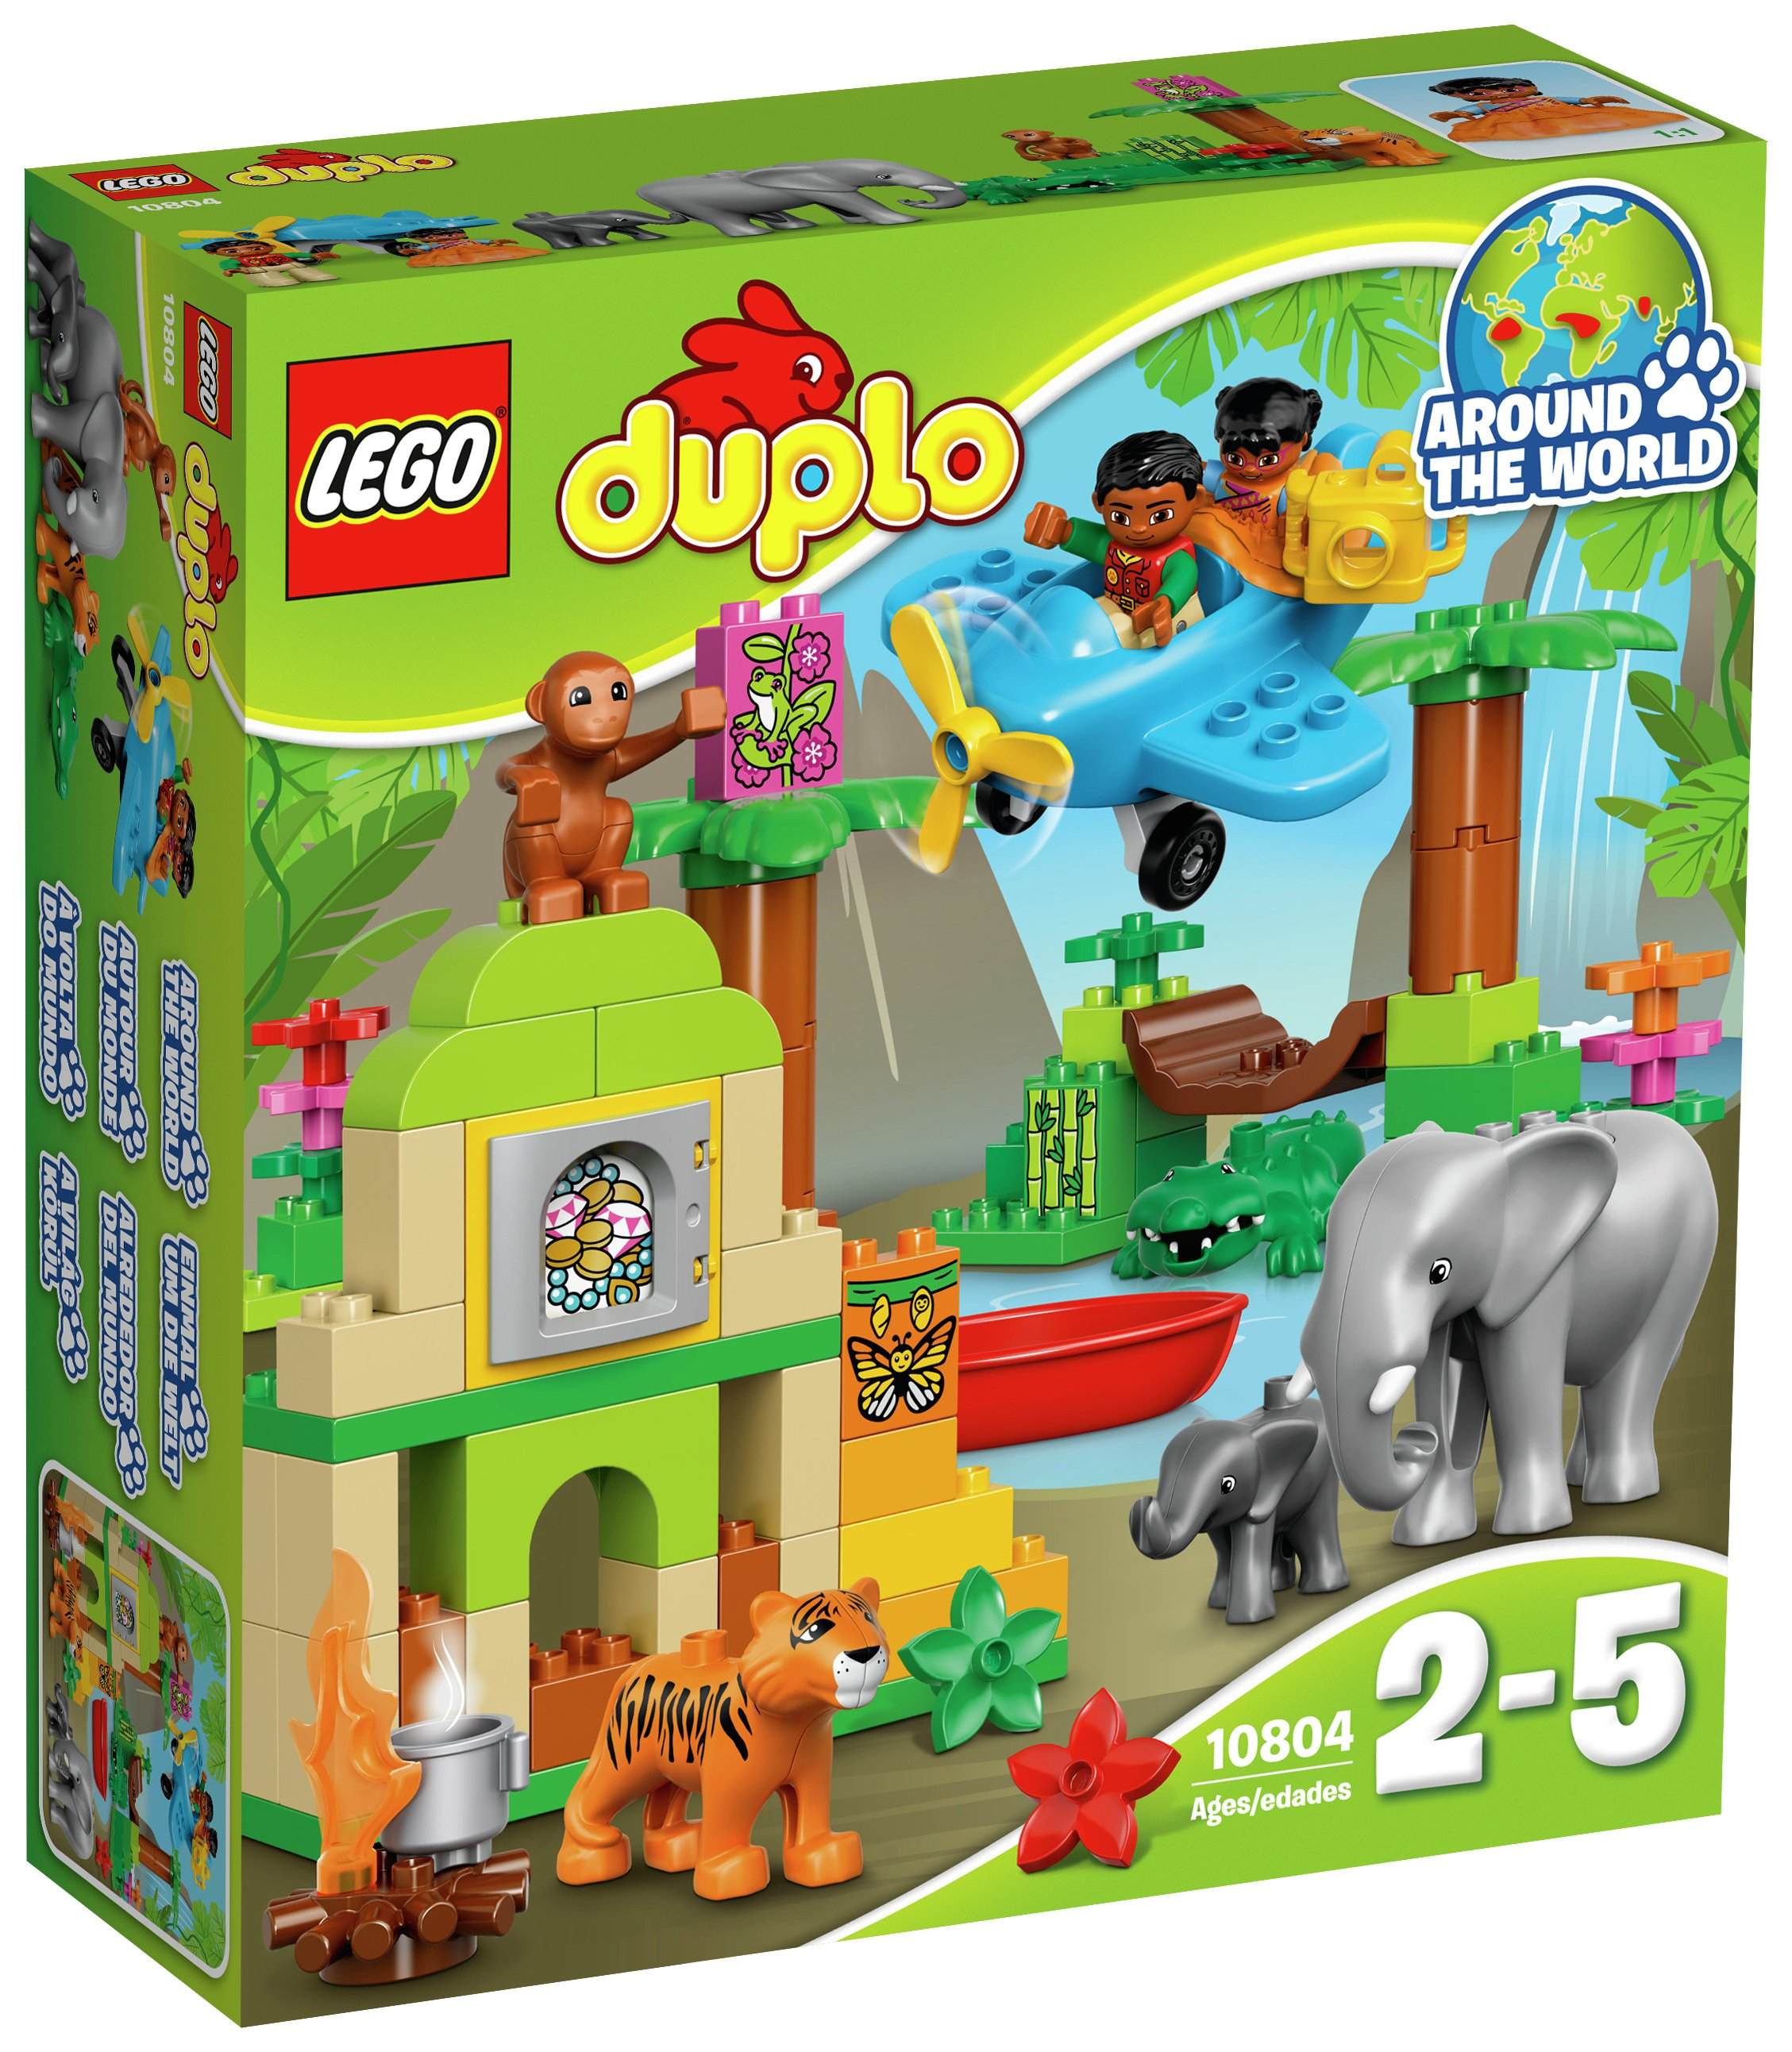 LEGO DUPLO Jungle - 10804.